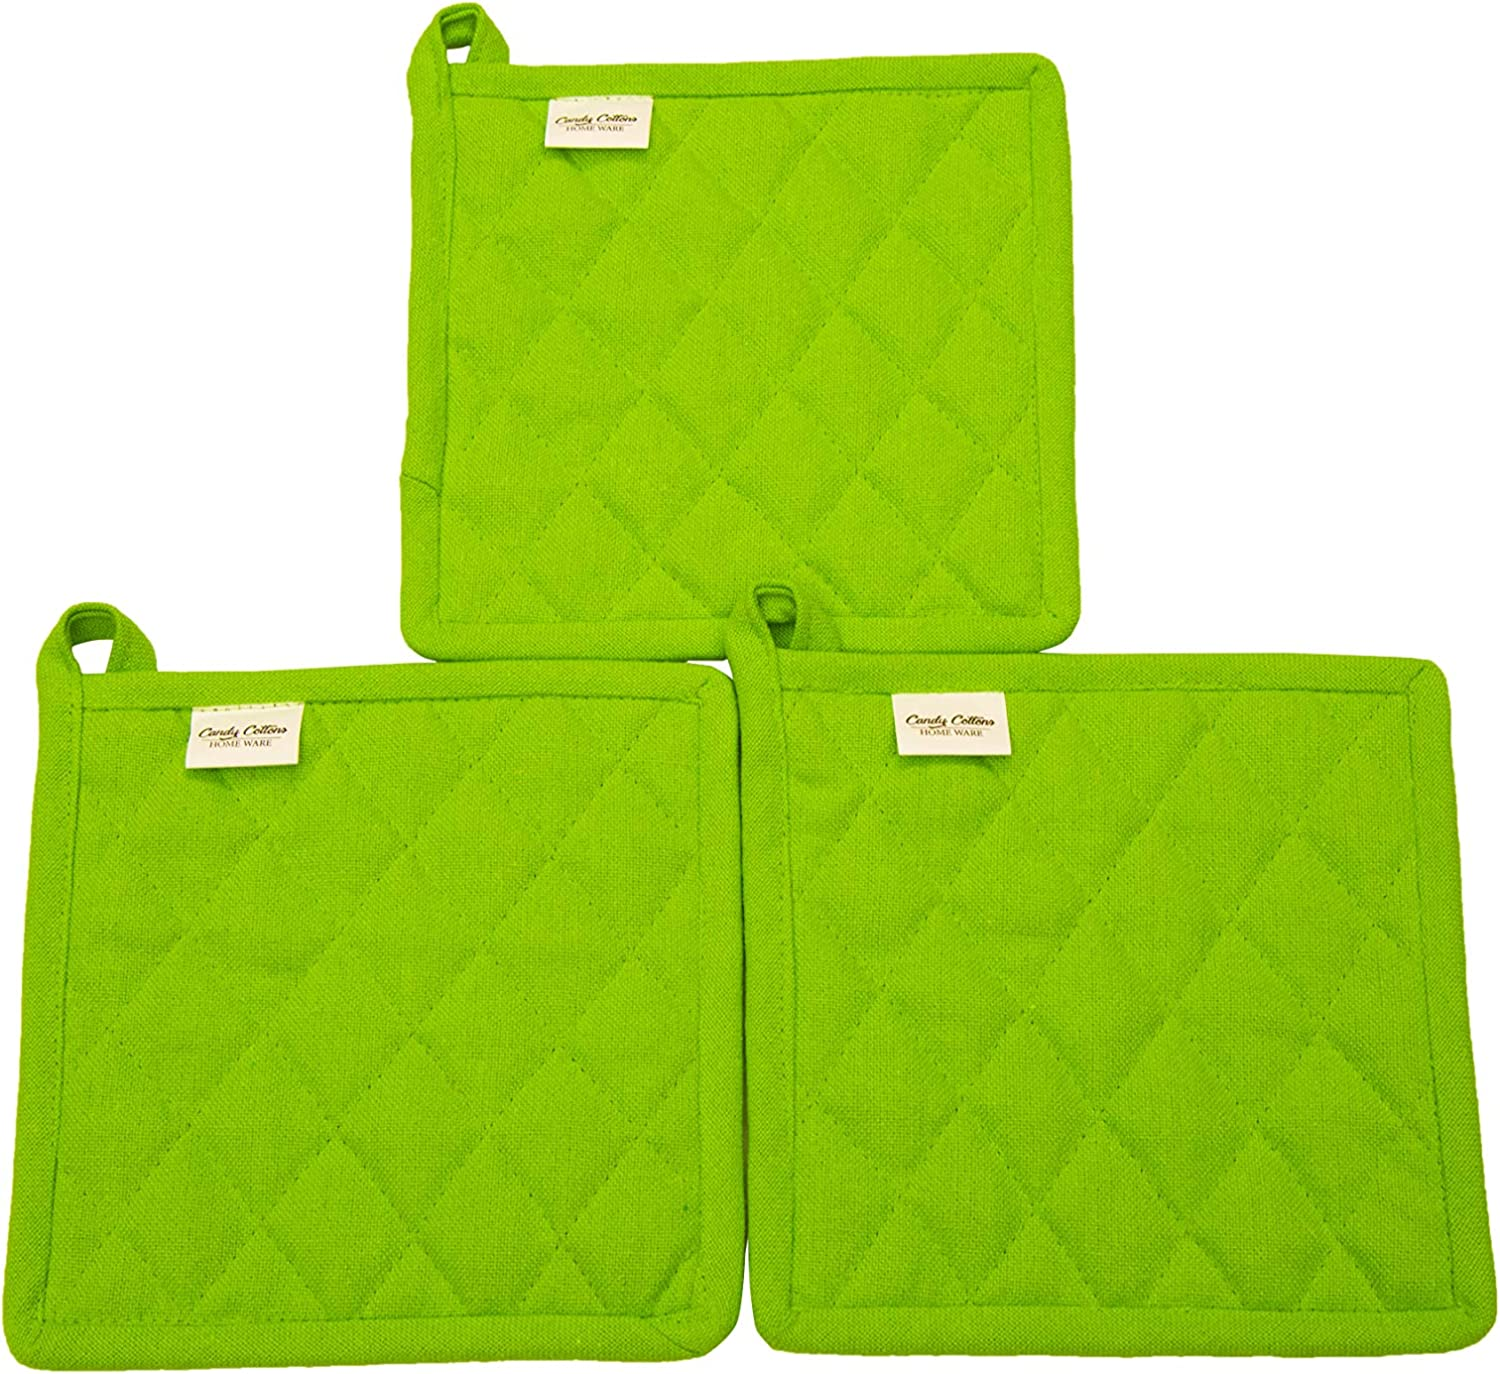 "Pot Holder, Set of 3, 100% Cotton, cotton fabric quilted, 8"" x 8"", Lime green, Machine Washable and Heat Resistant Pocket Mitts for Kitchen Cooking and Baking"